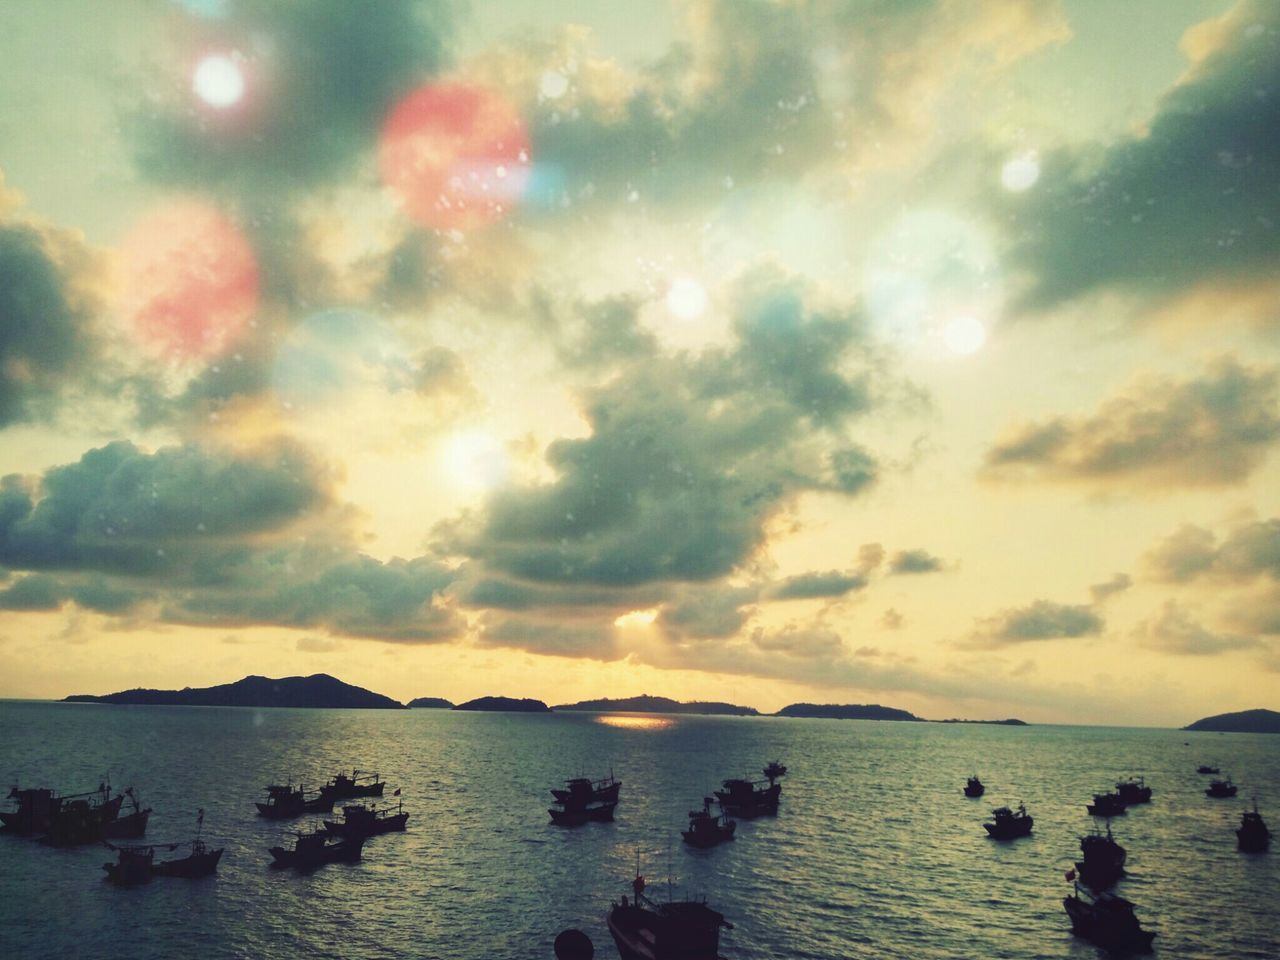 water, sea, sky, sunset, beach, nature, scenics, beauty in nature, silhouette, tranquility, outdoors, vacations, leisure, horizon over water, no people, day